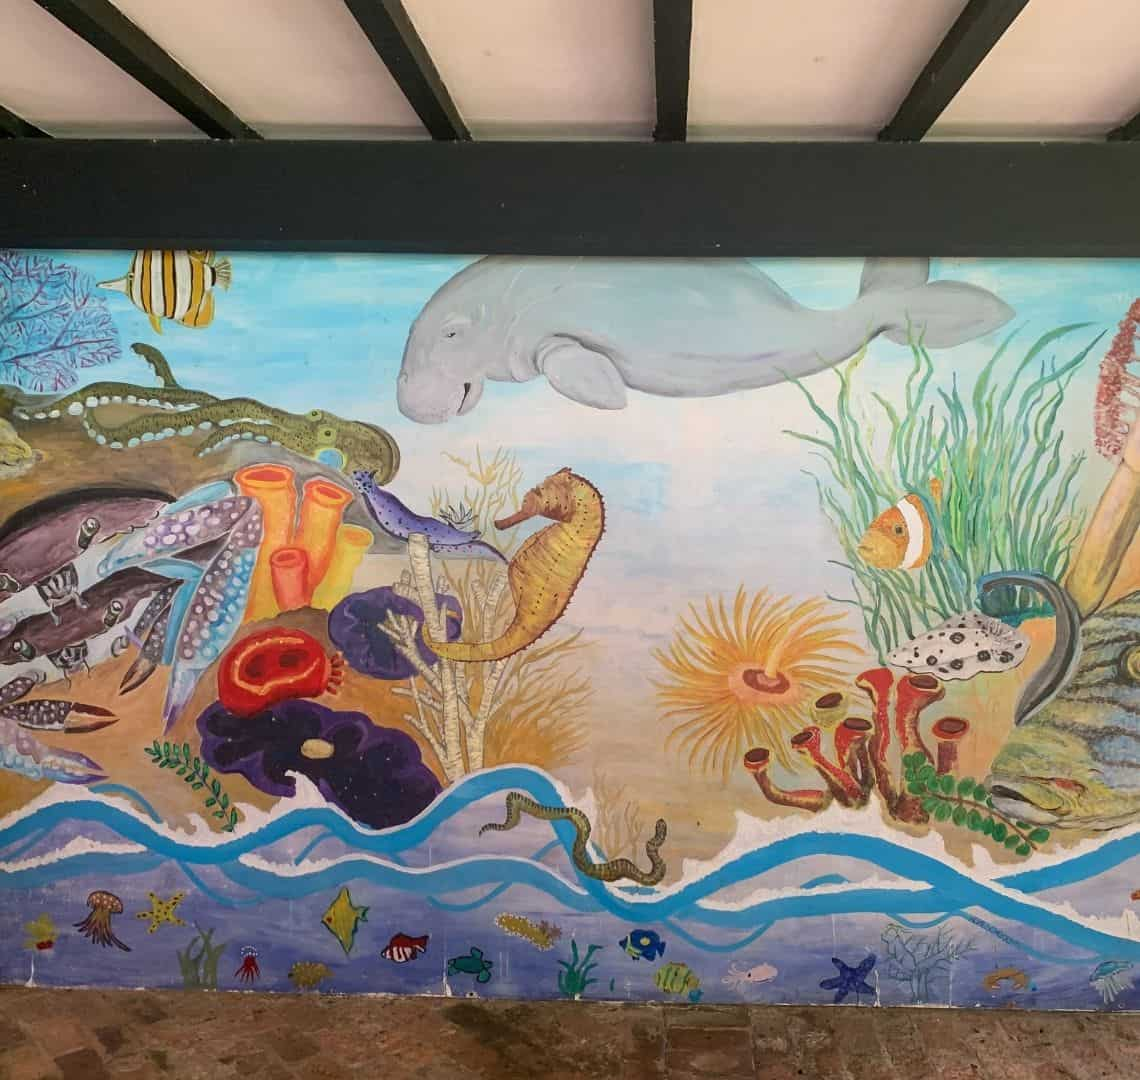 A mural of a sea scene with marine life such as a dugong, a sea horse, a clown fish, an anemone and a crab.